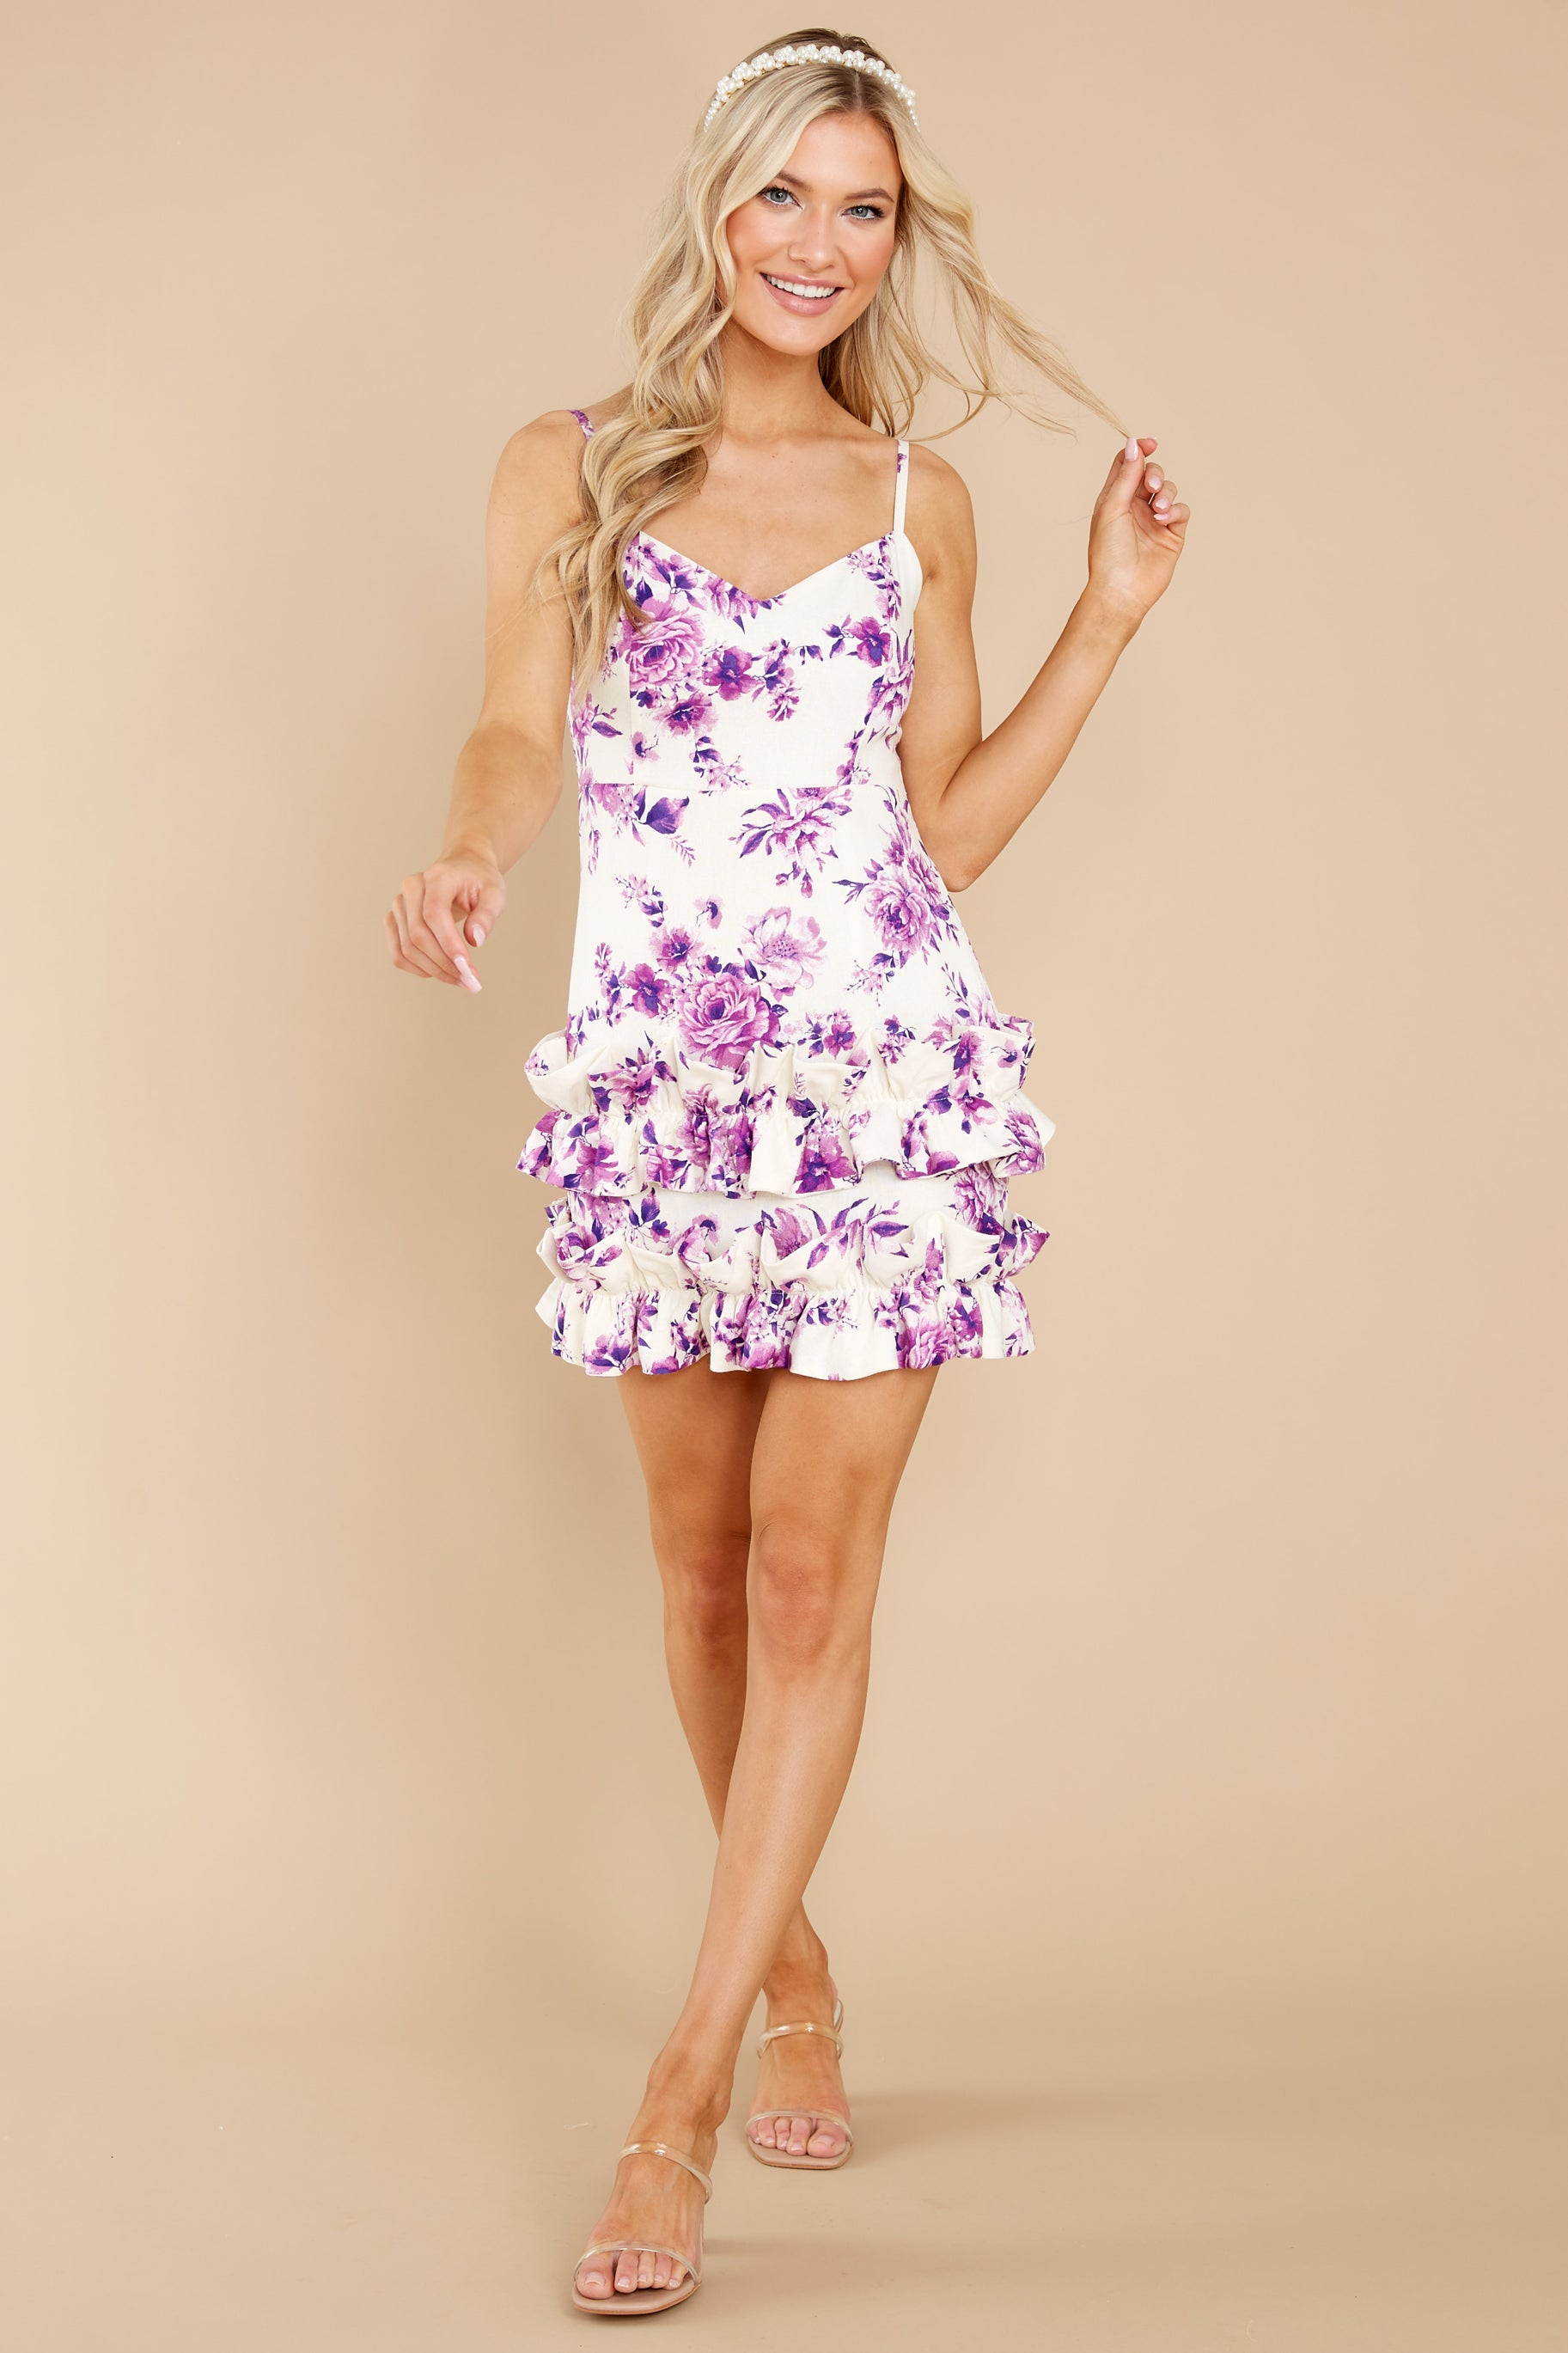 2 In Blossom White And Purple Floral Print Dress at reddress.com